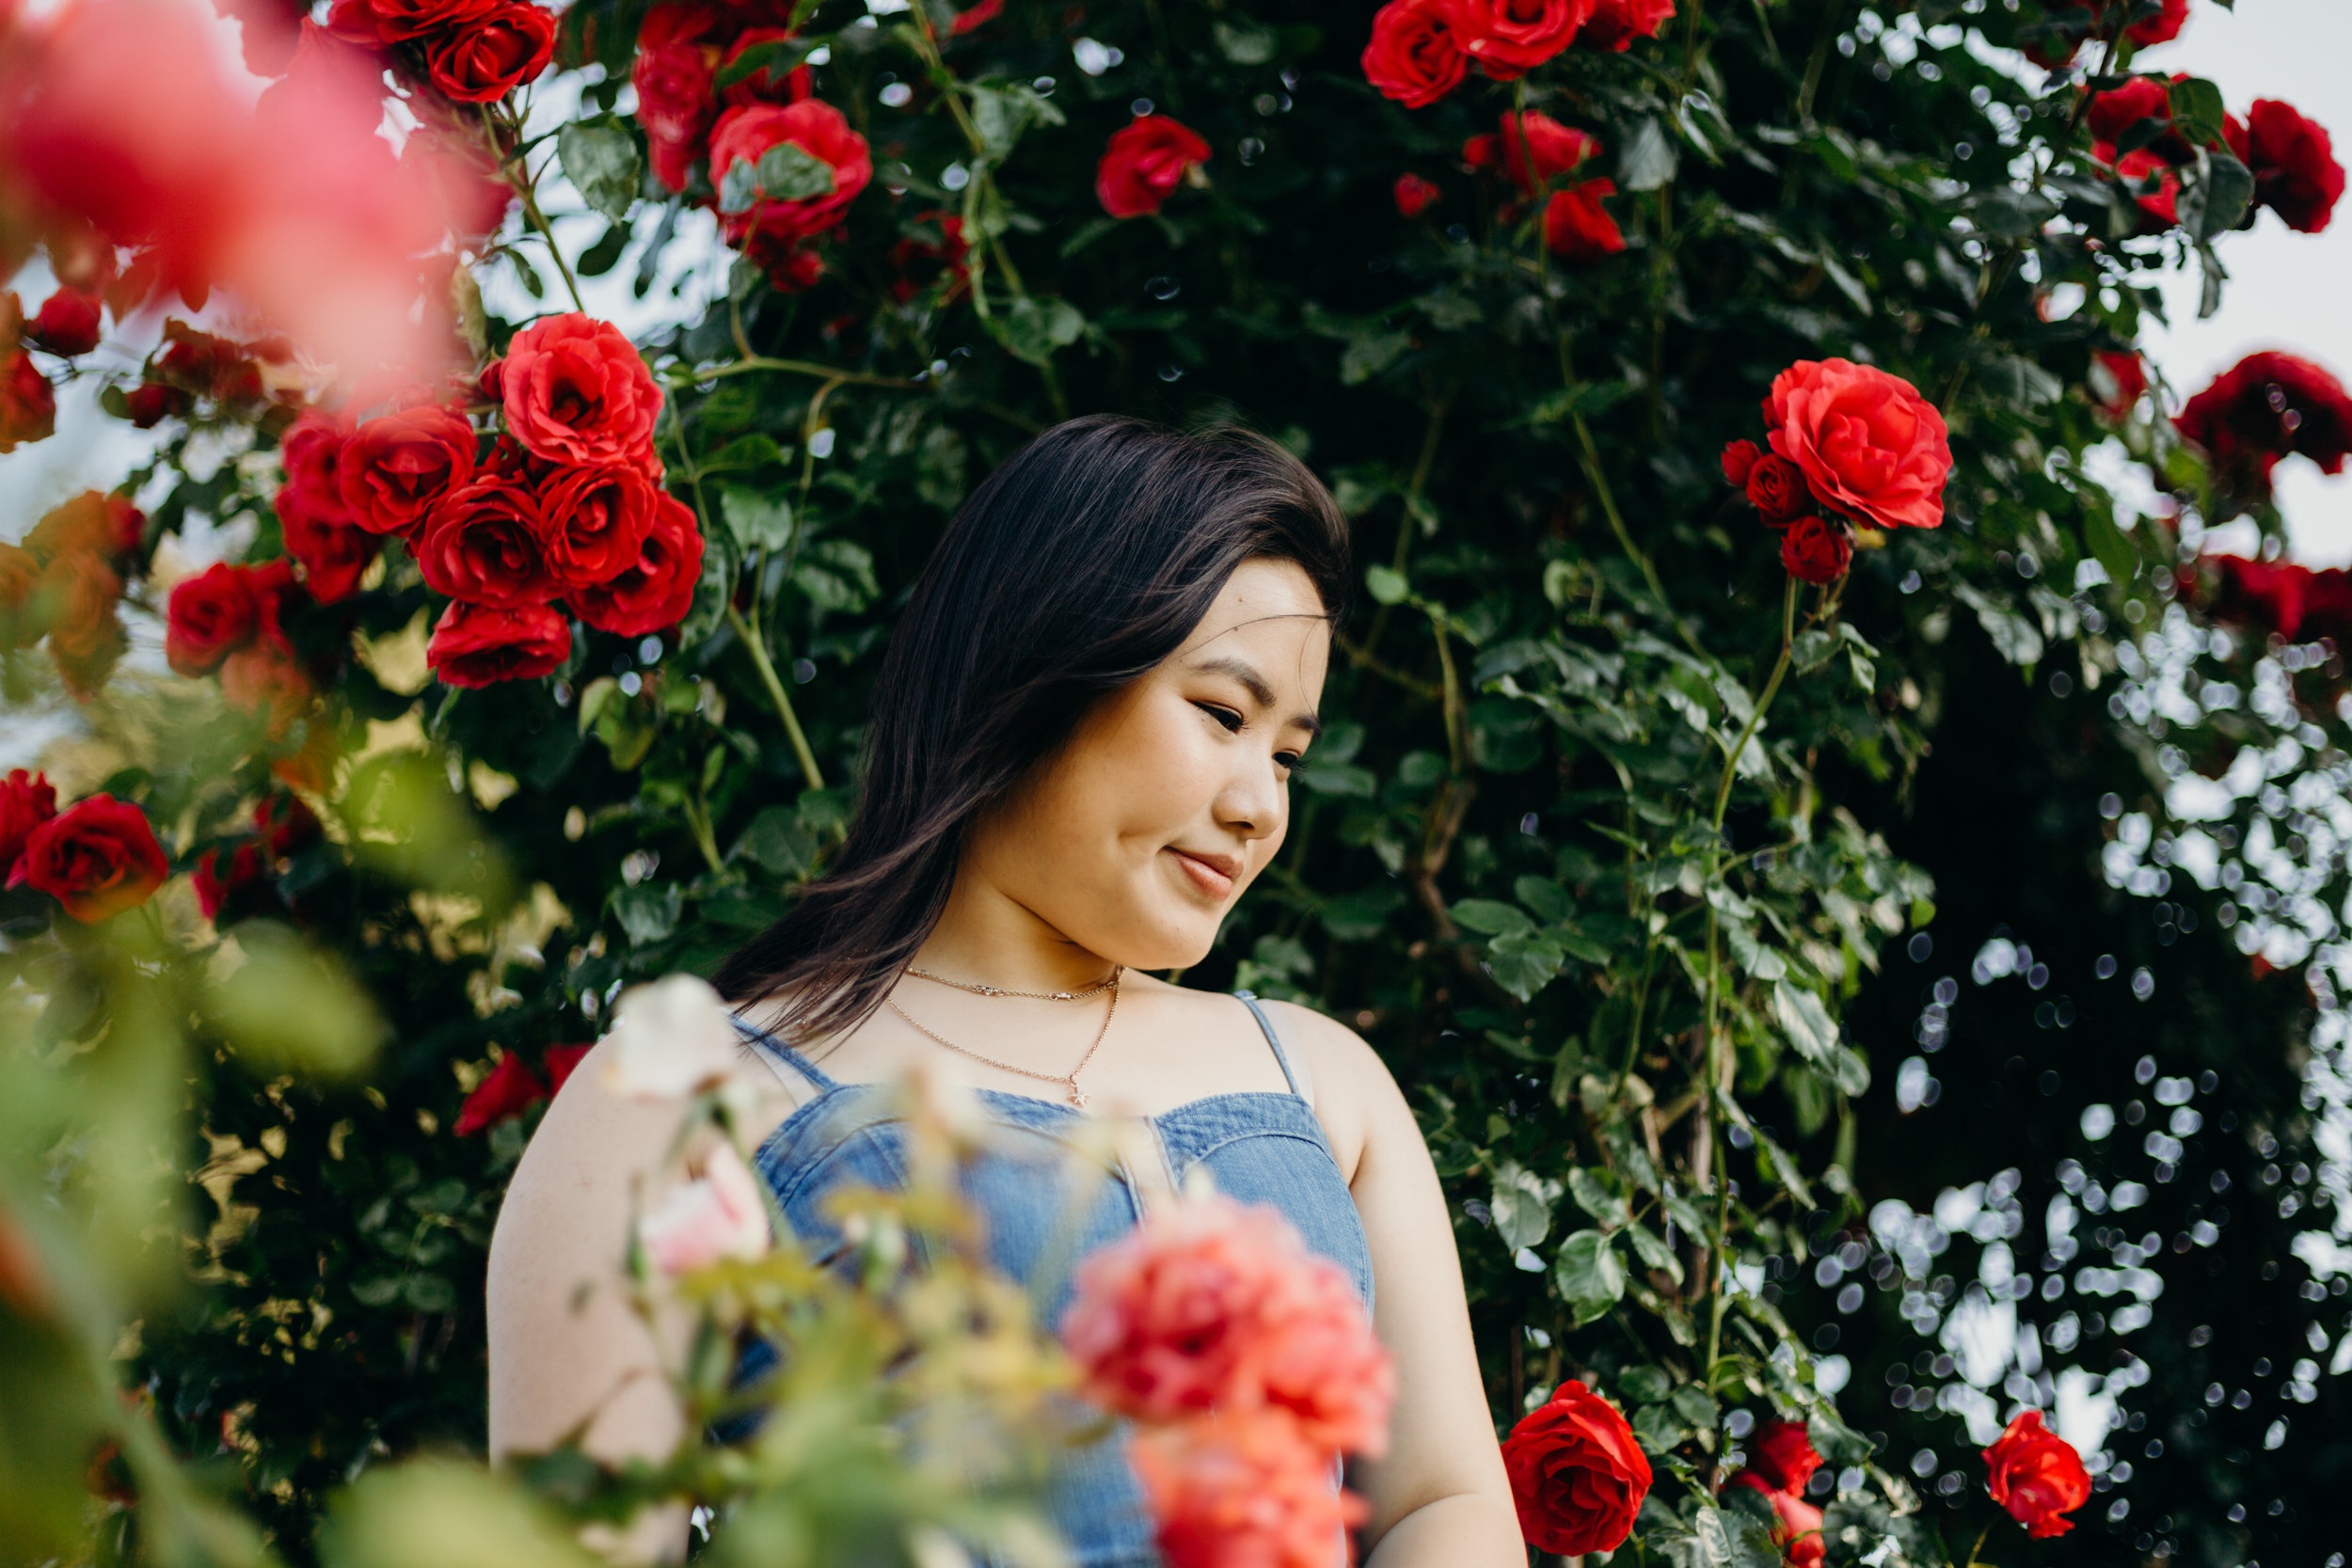 K A T H E R I N E - At Municipal Rose Garden (click the name to see more)